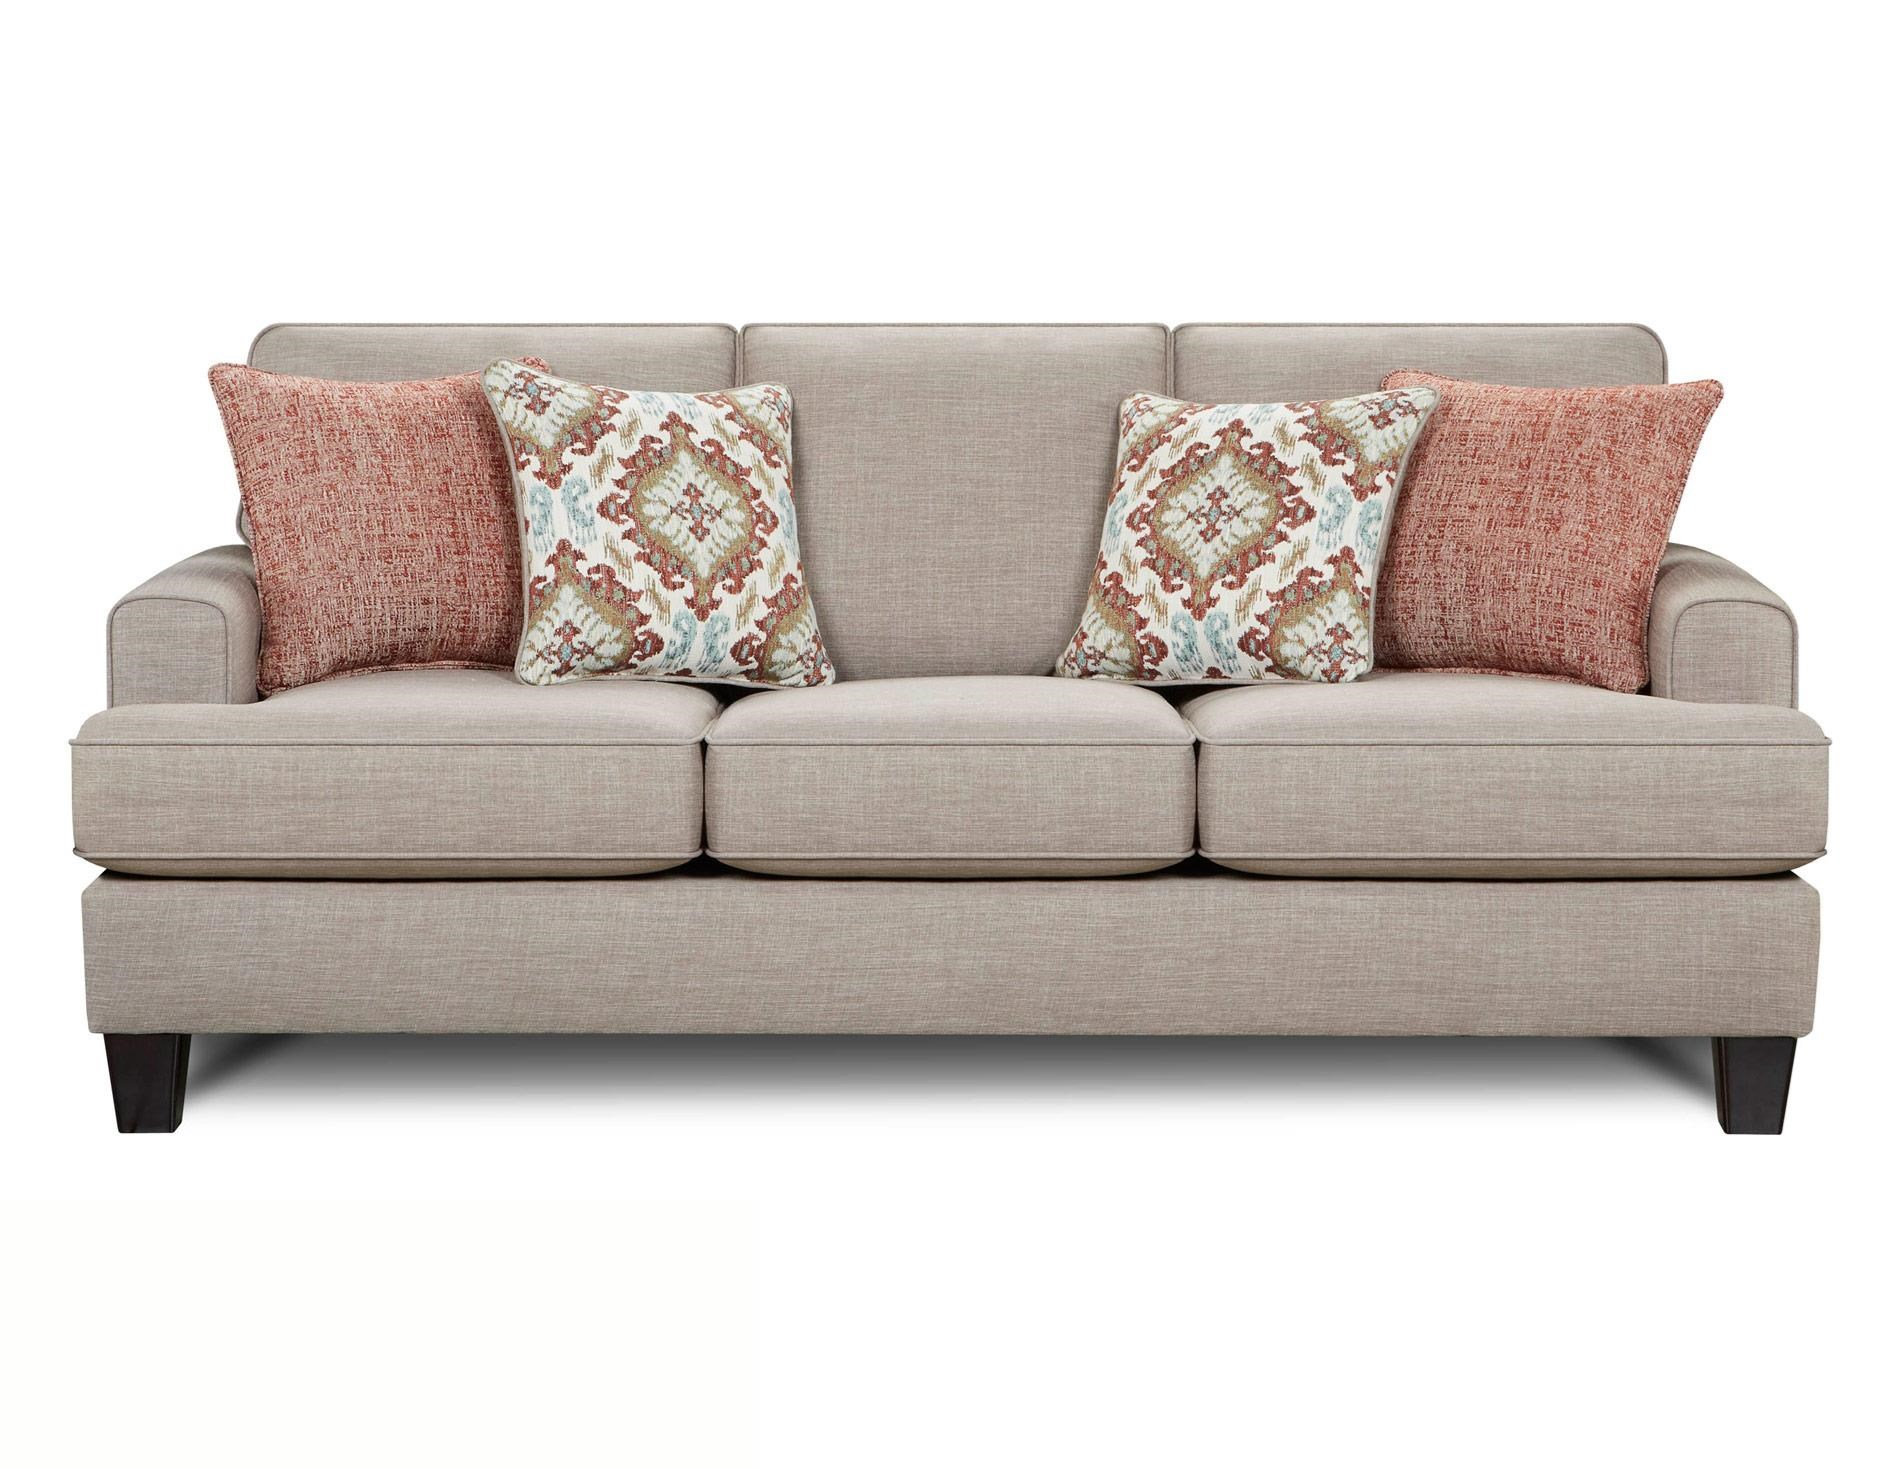 Fusion Furniture Quinn Twilight Sofa - Item Number: 2600-QUINN-TWILIGHT